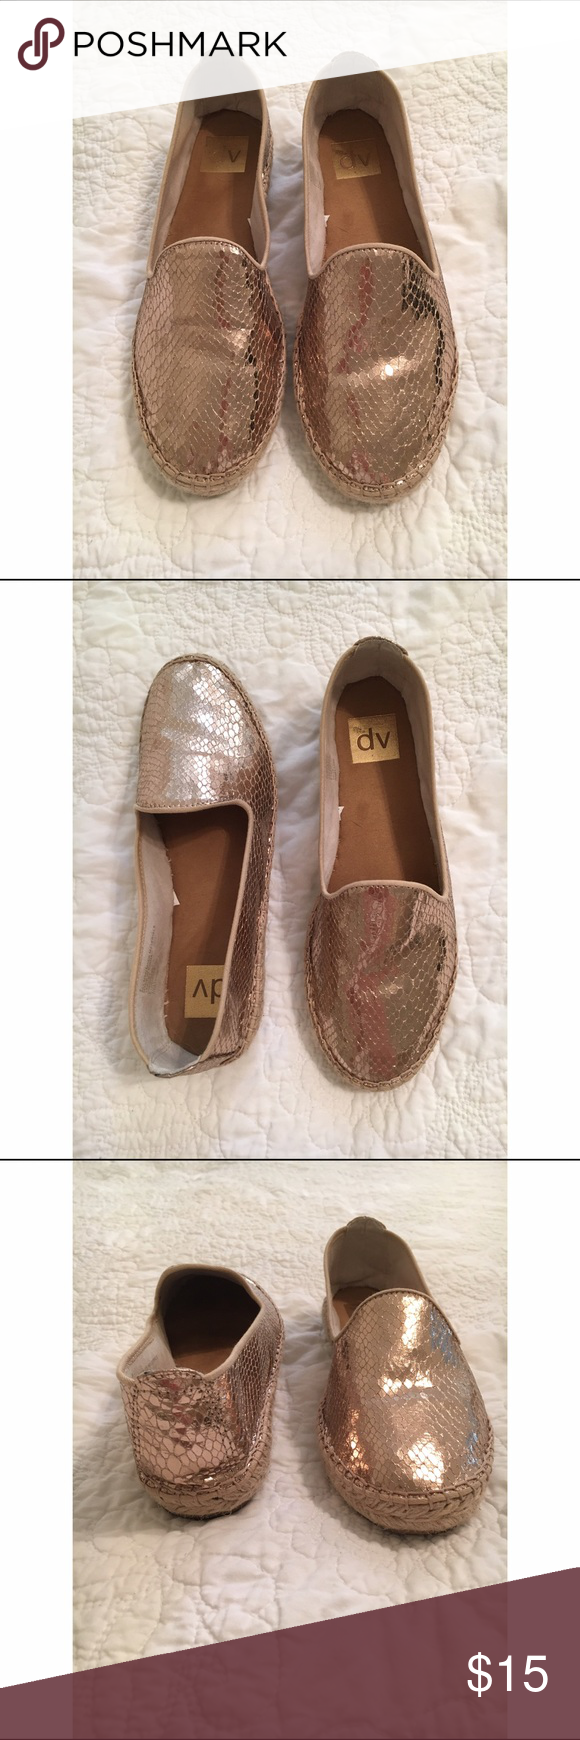 Gold Snakeskin Espadrille Flats These metallic gold snakeskin espadrille slip on flats are made by dv. I have worn them maybe twice. They are very comfortable!! They are size 8. I bought them at Target a few months ago for $24.99. I am selling them for $15. DV by Dolce Vita Shoes Espadrilles